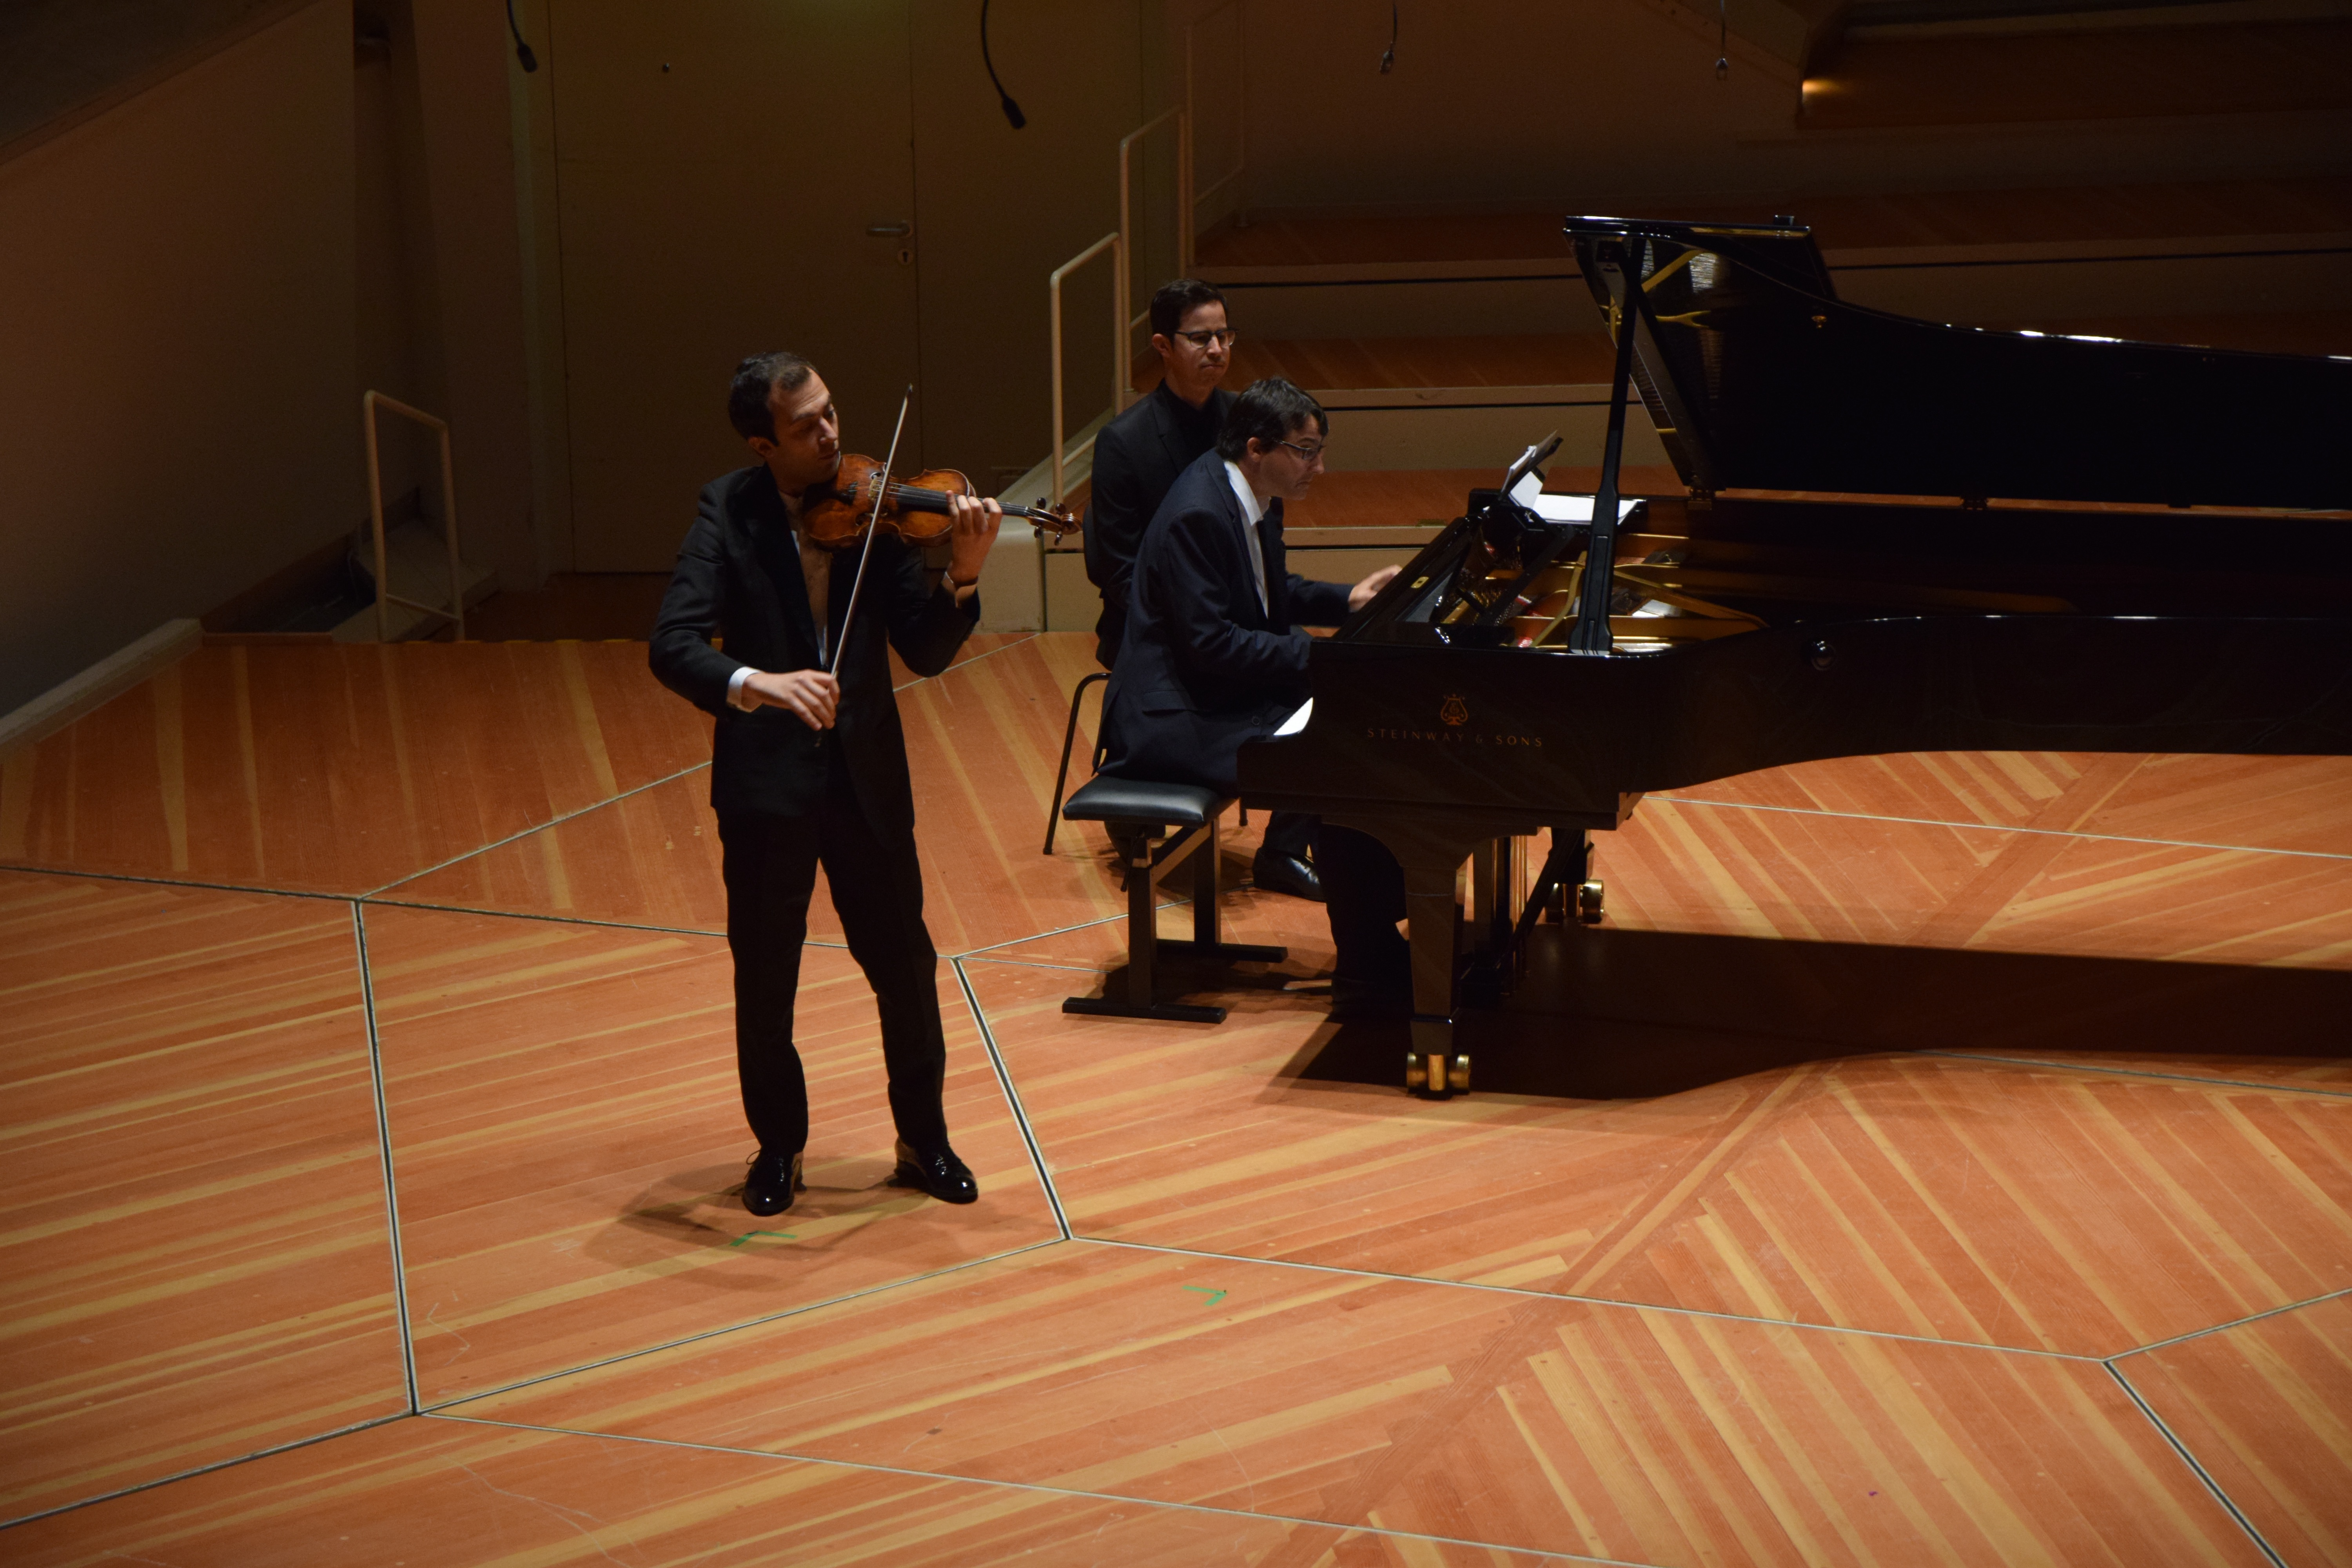 berliner music competition 13